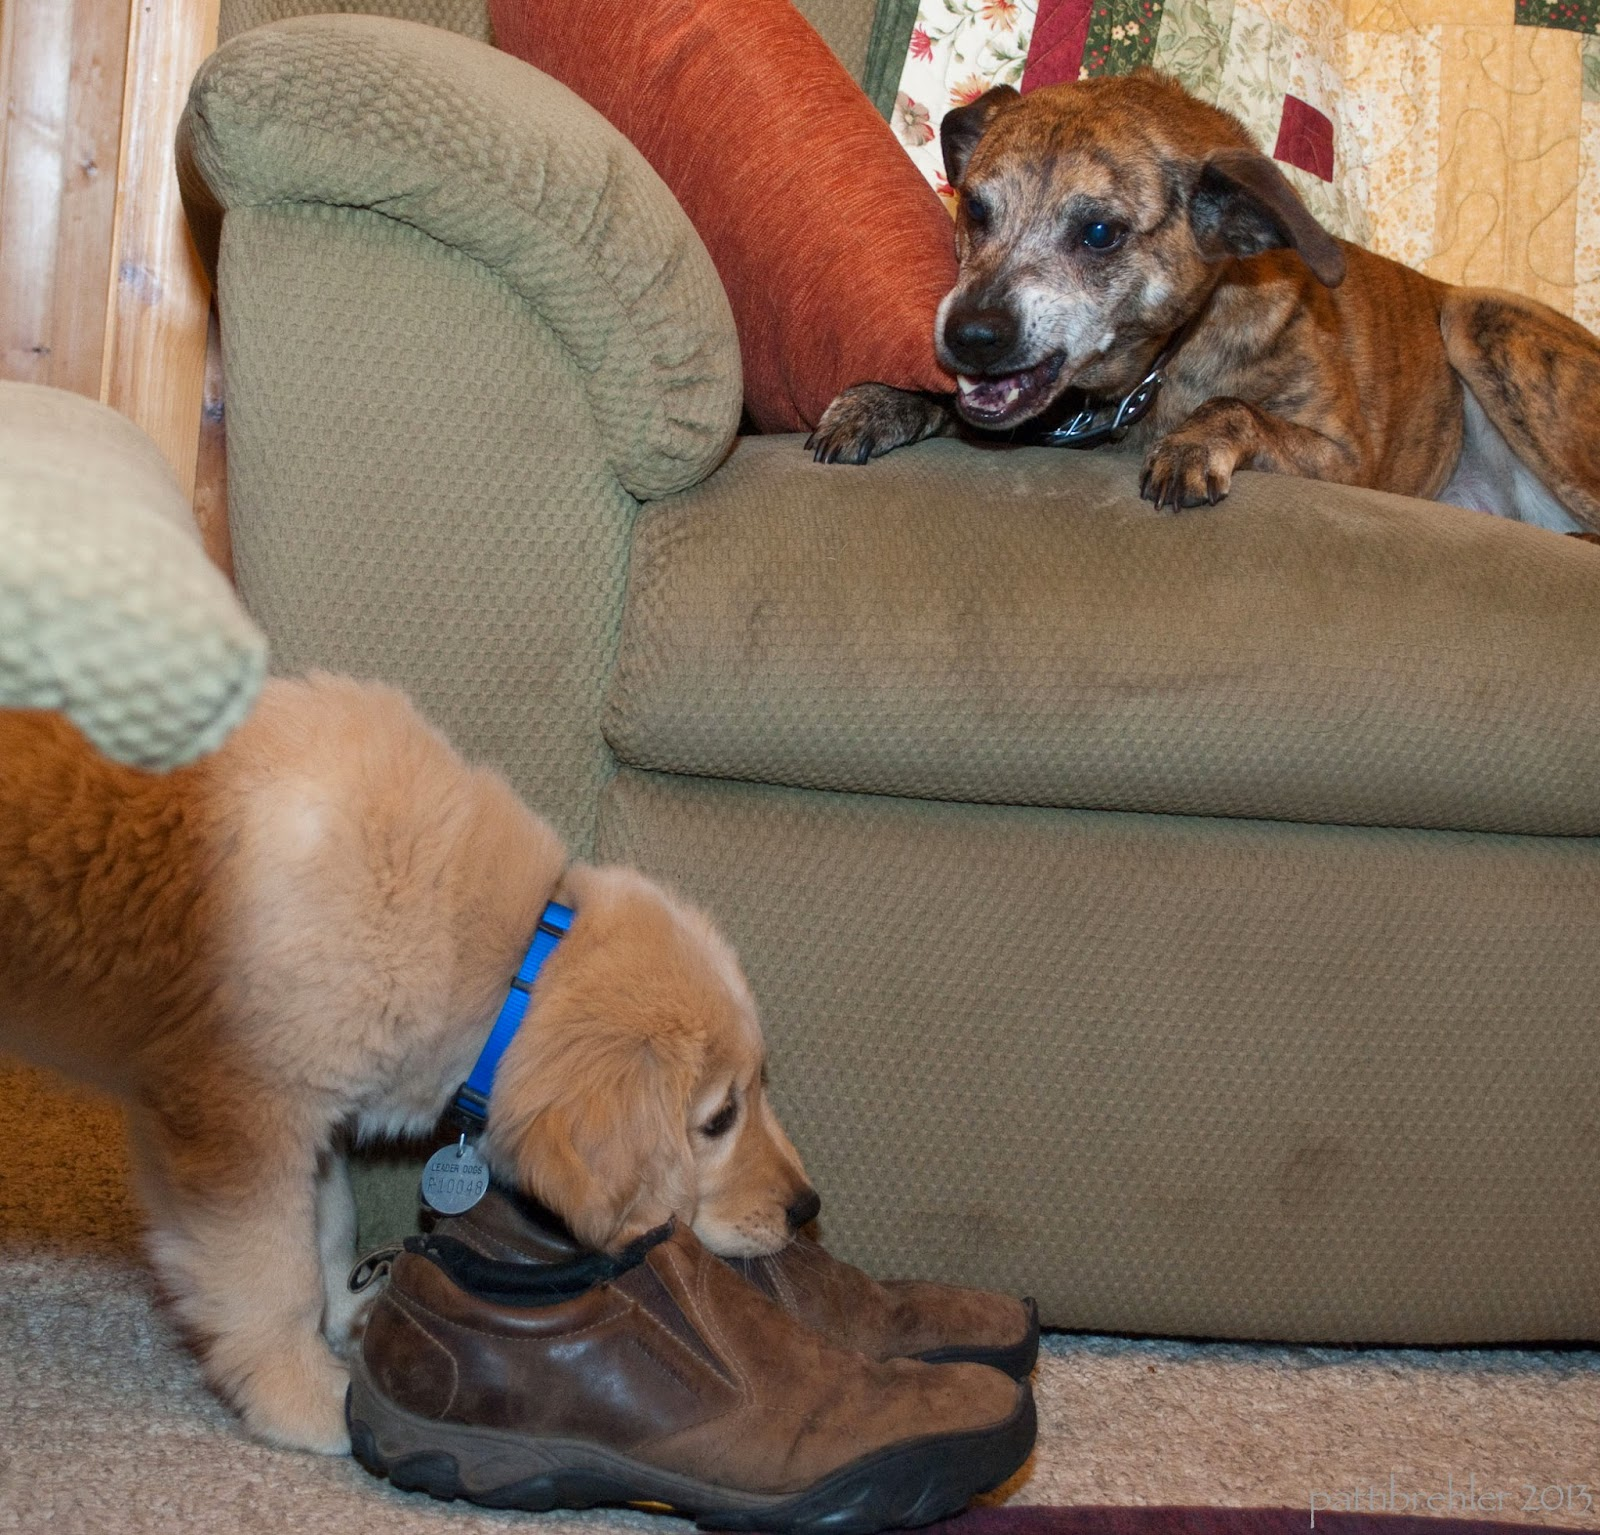 An older brindle coated 40 pound dog is lying on a green couch with an orange pillow. The dog's muzzle is gray and she is snarling at a small fuzzy golden retriever puppy who is on the floor about to chew a brown shoe. The puppy is wearing a blue collar and a round tag.